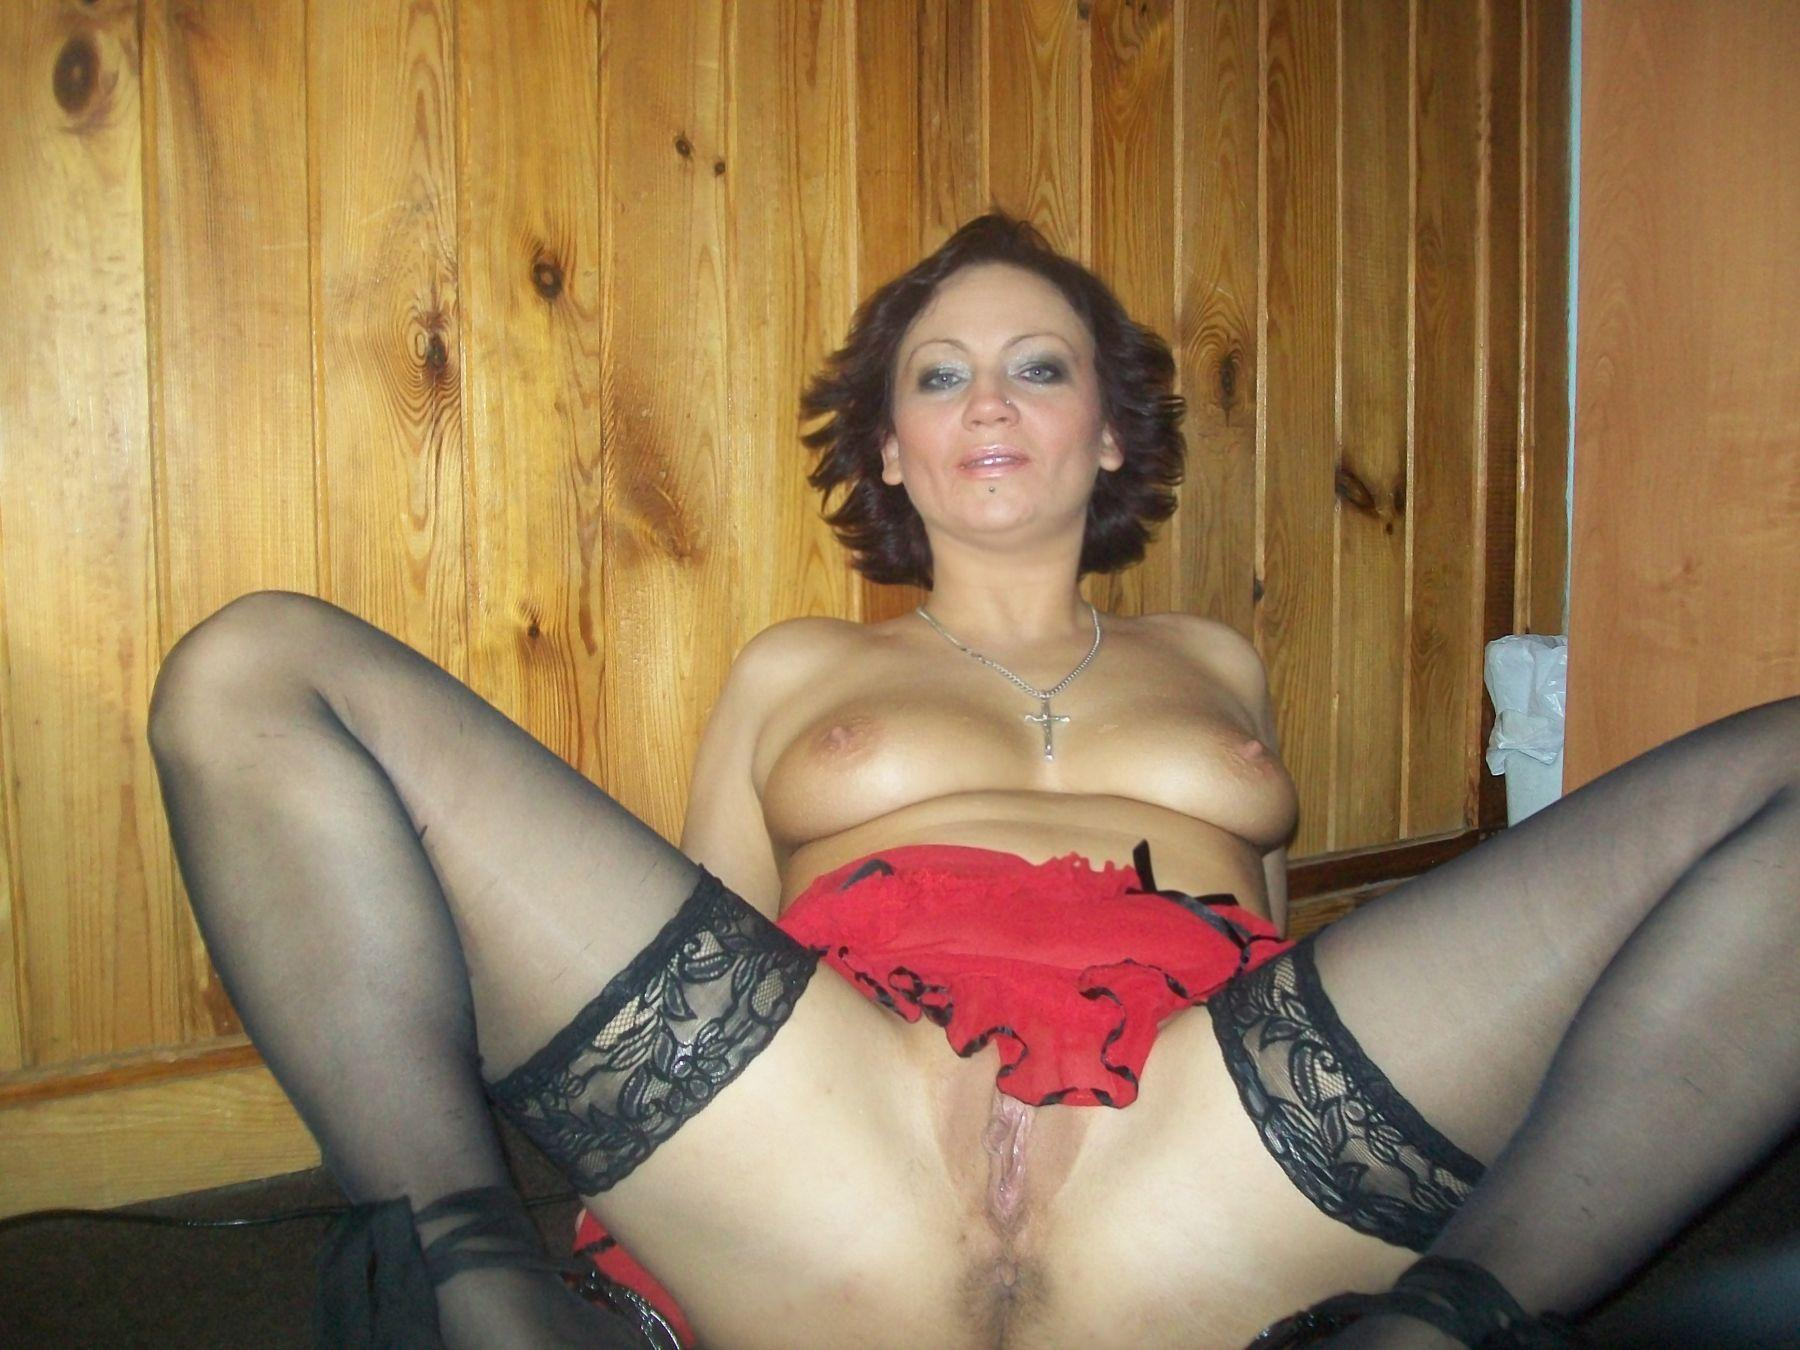 Nude Polish MILF bares shaved vagina spreading naked on the floor. Mature lady in black stockings shows her pussy lying on the floor